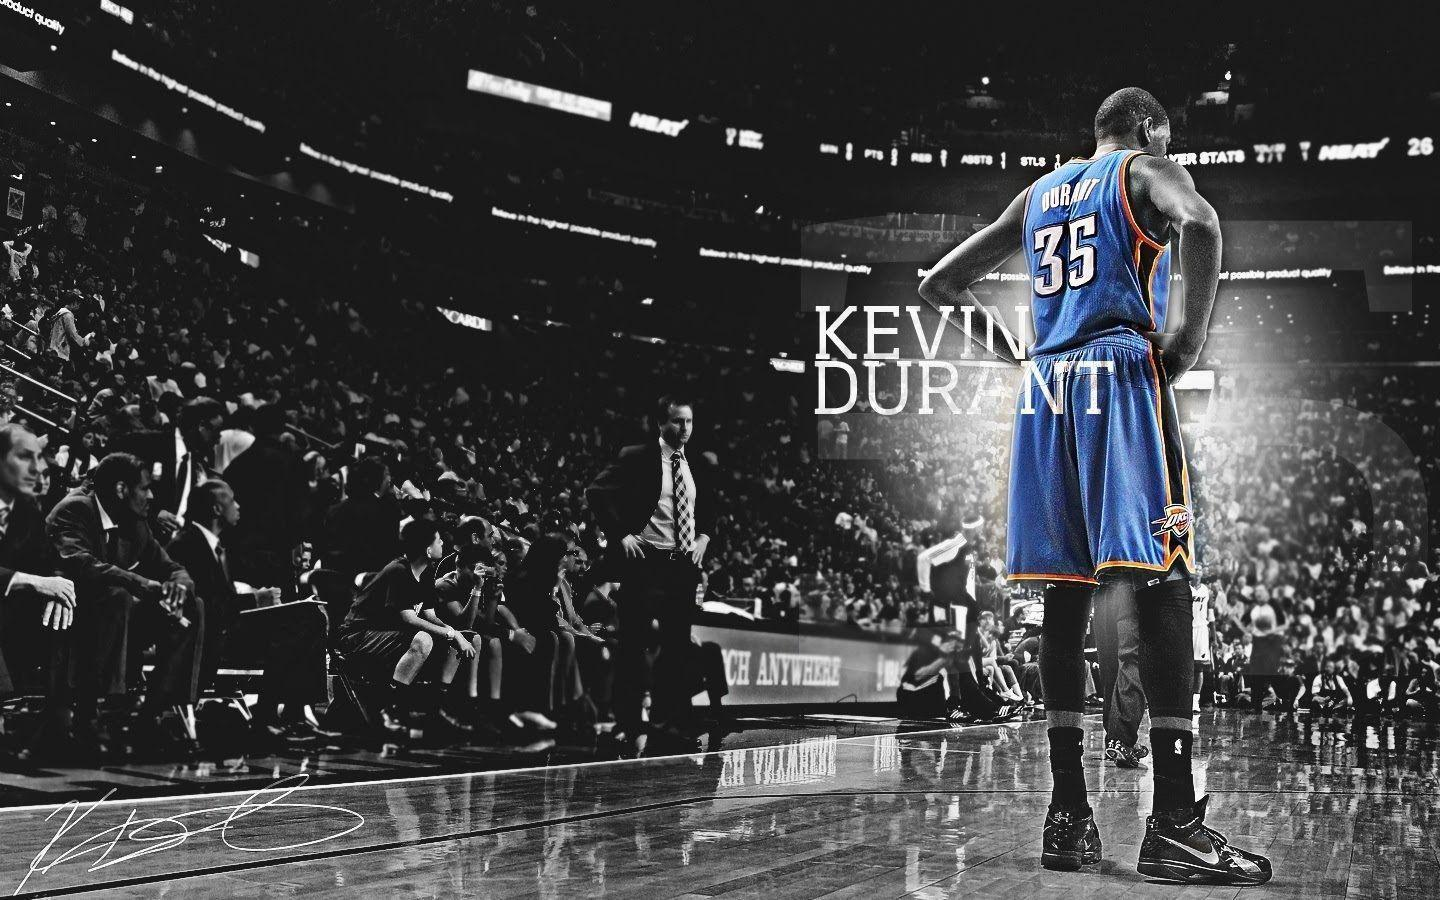 Kevin Durant Wallpapers HD 2017 1440x900